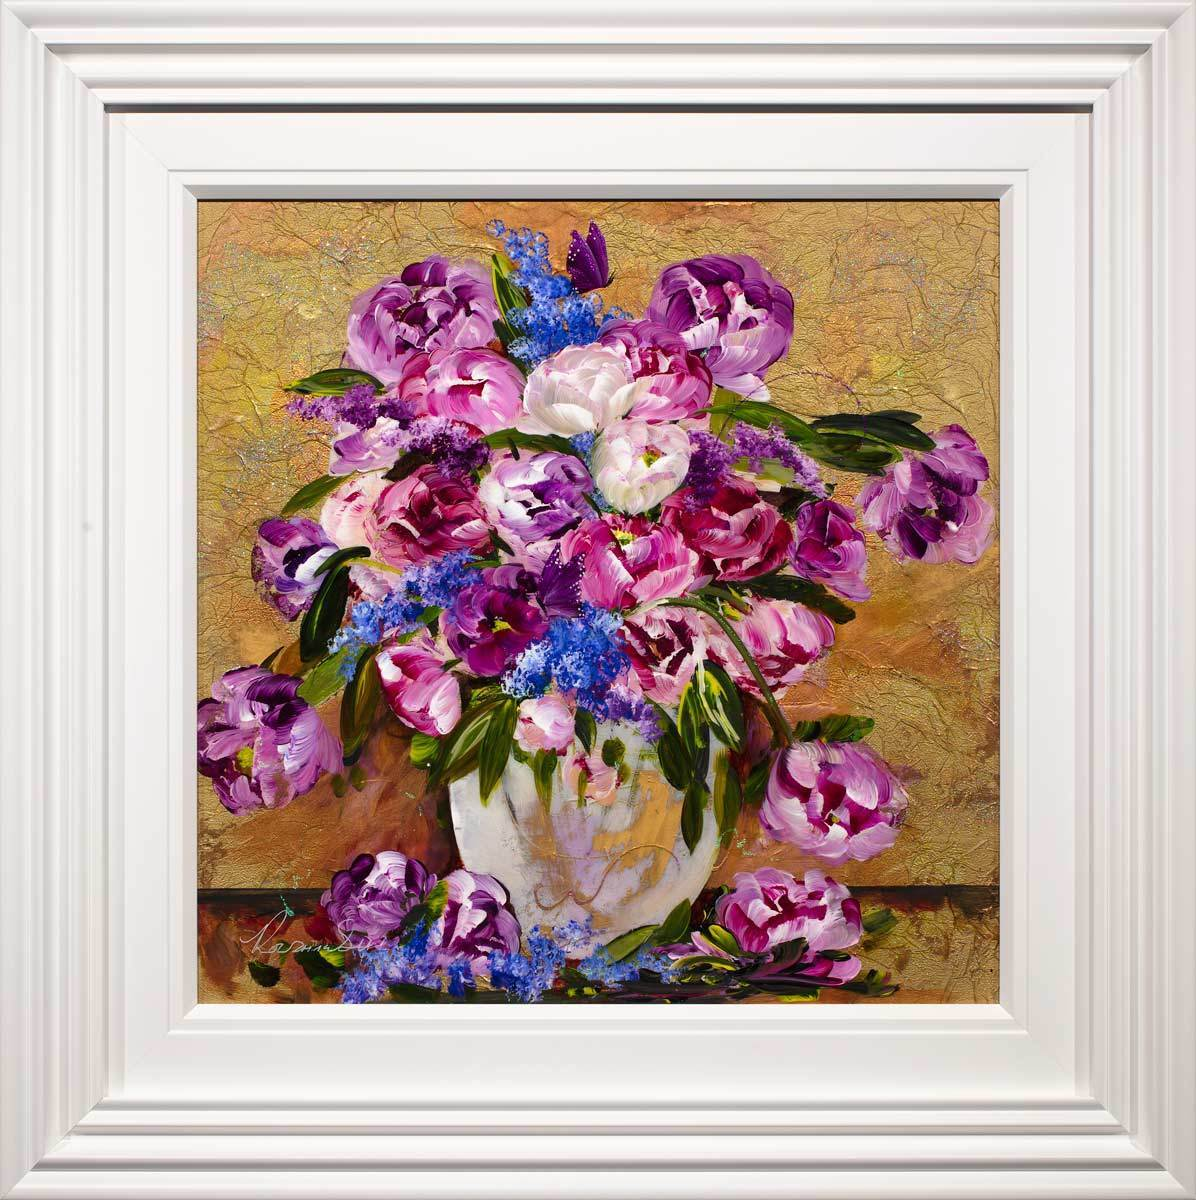 Hand Picked For You - Original Rozanne Bell Framed